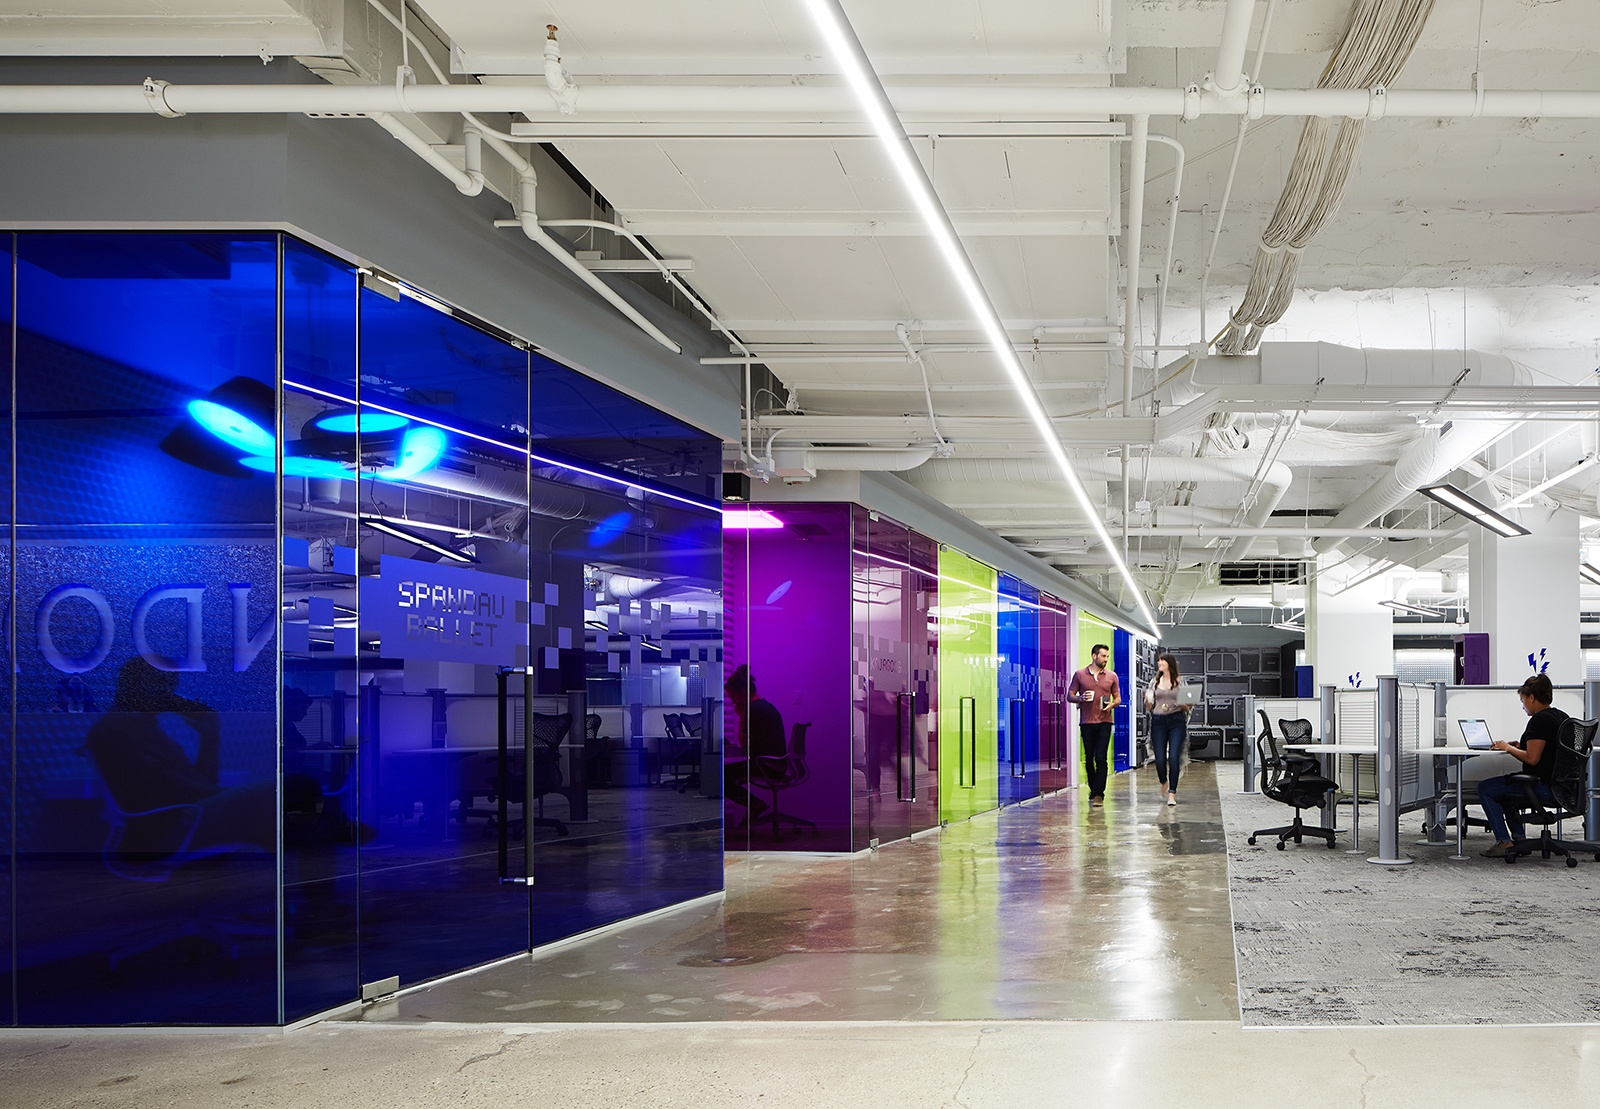 pandora-new-office-chicago-4